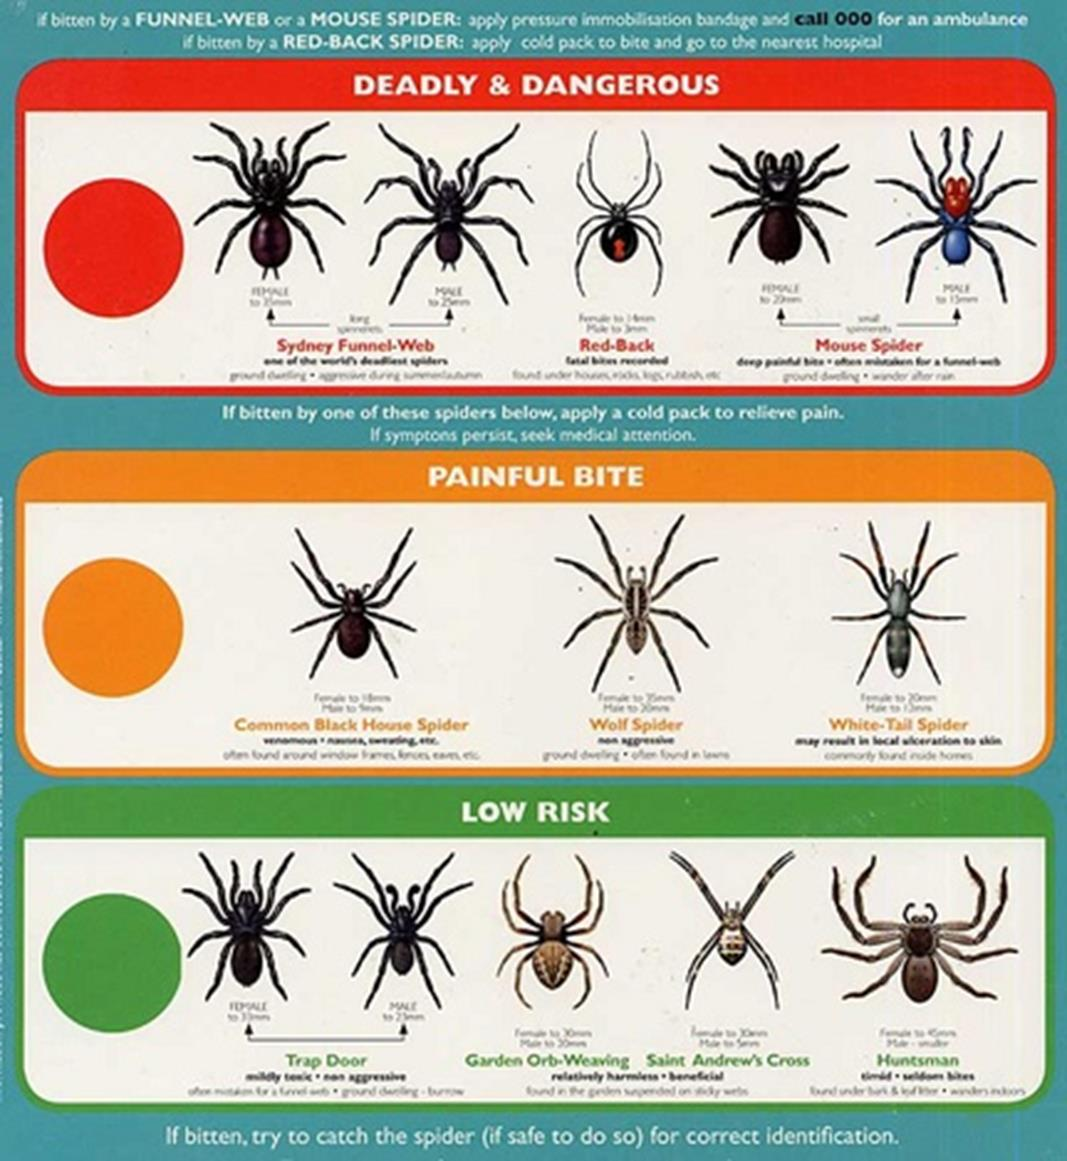 All About Spiders - Types of Spiders, Life Cycle, etc